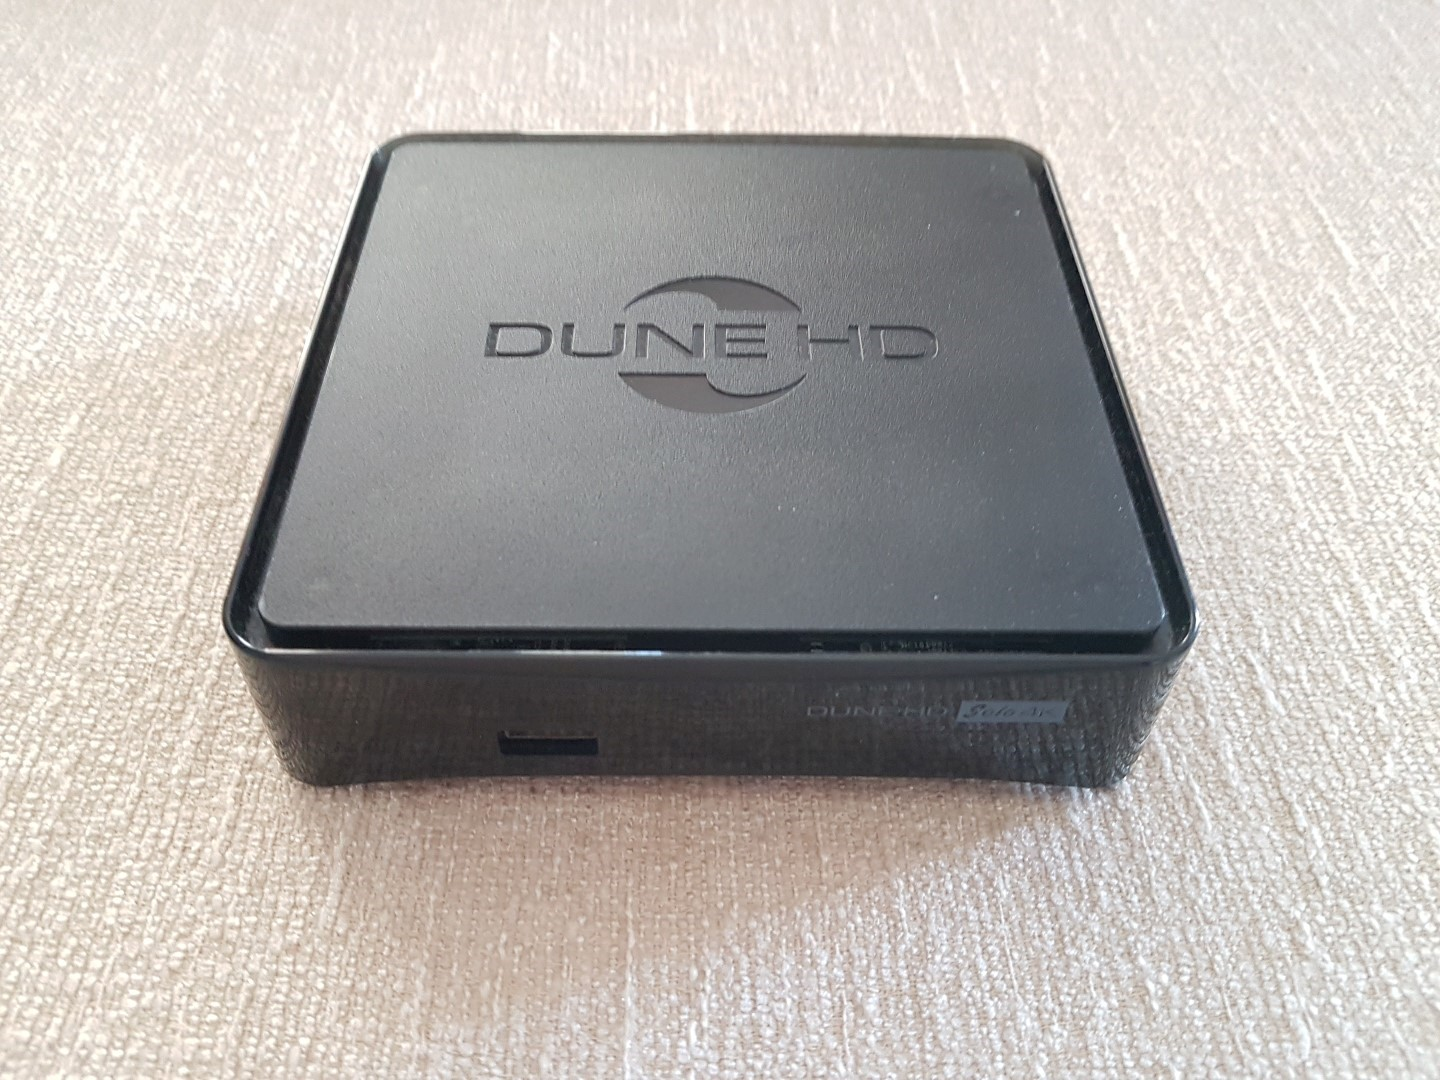 Dune HD Solo 4K – Media Player Reviews